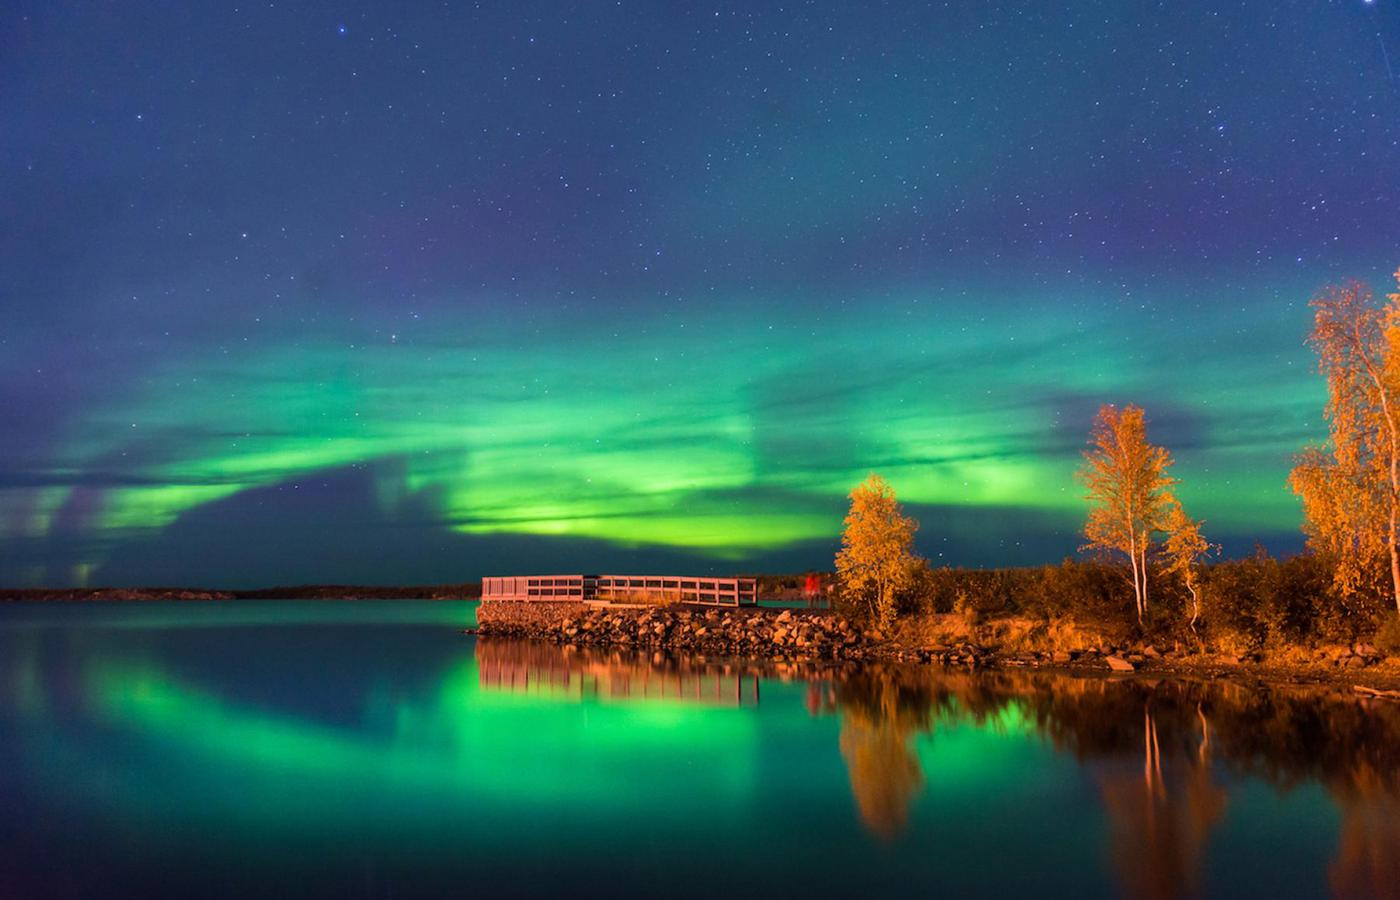 green northern lights dance across a lake in the summer